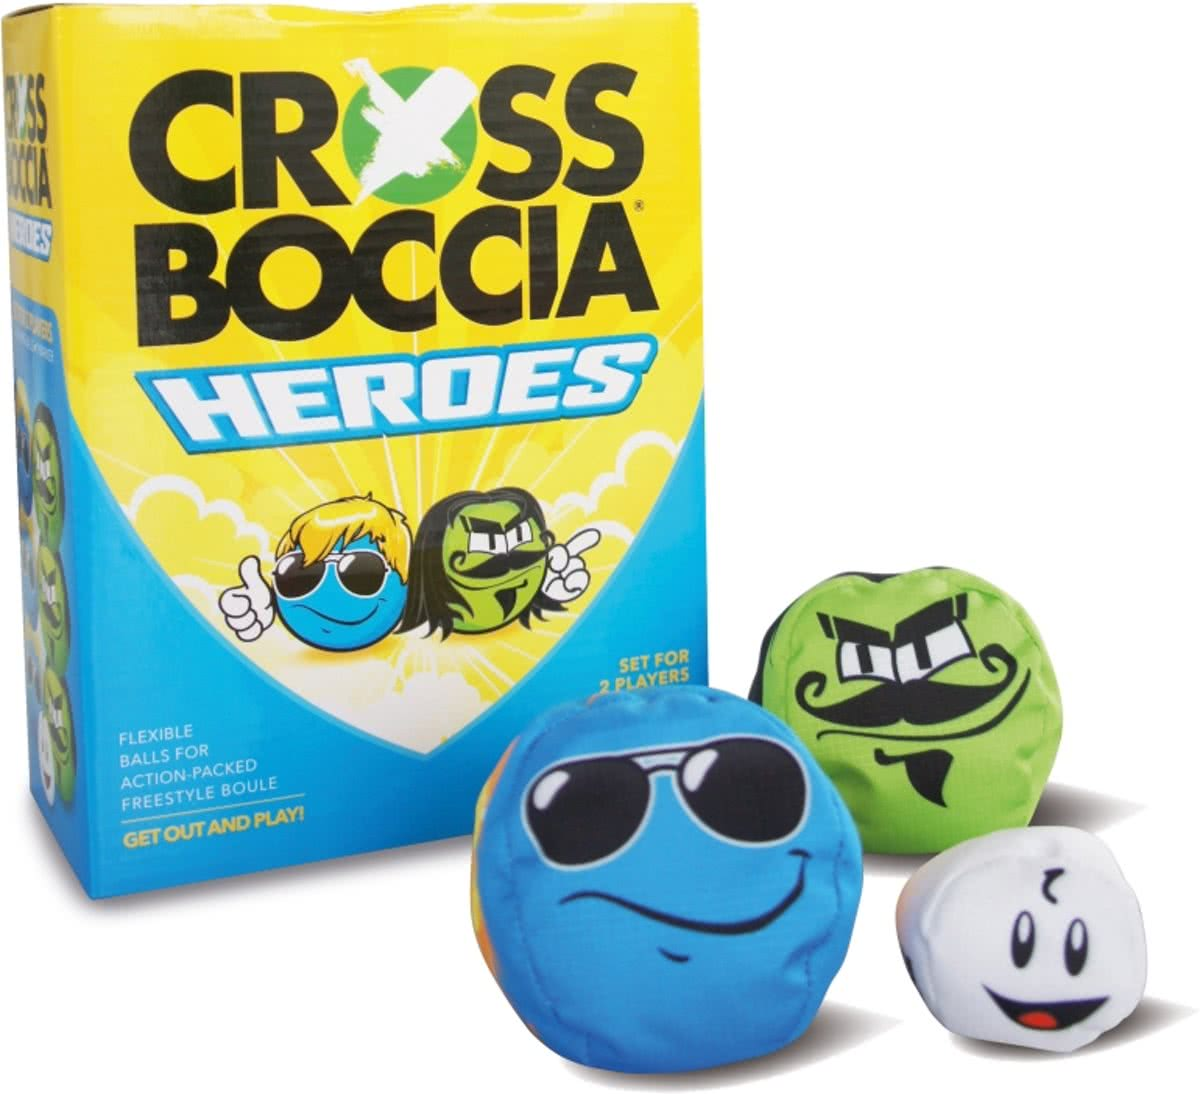 Fun Sports - Crossboccia Set voor 2 spelers - Mexican and Dude